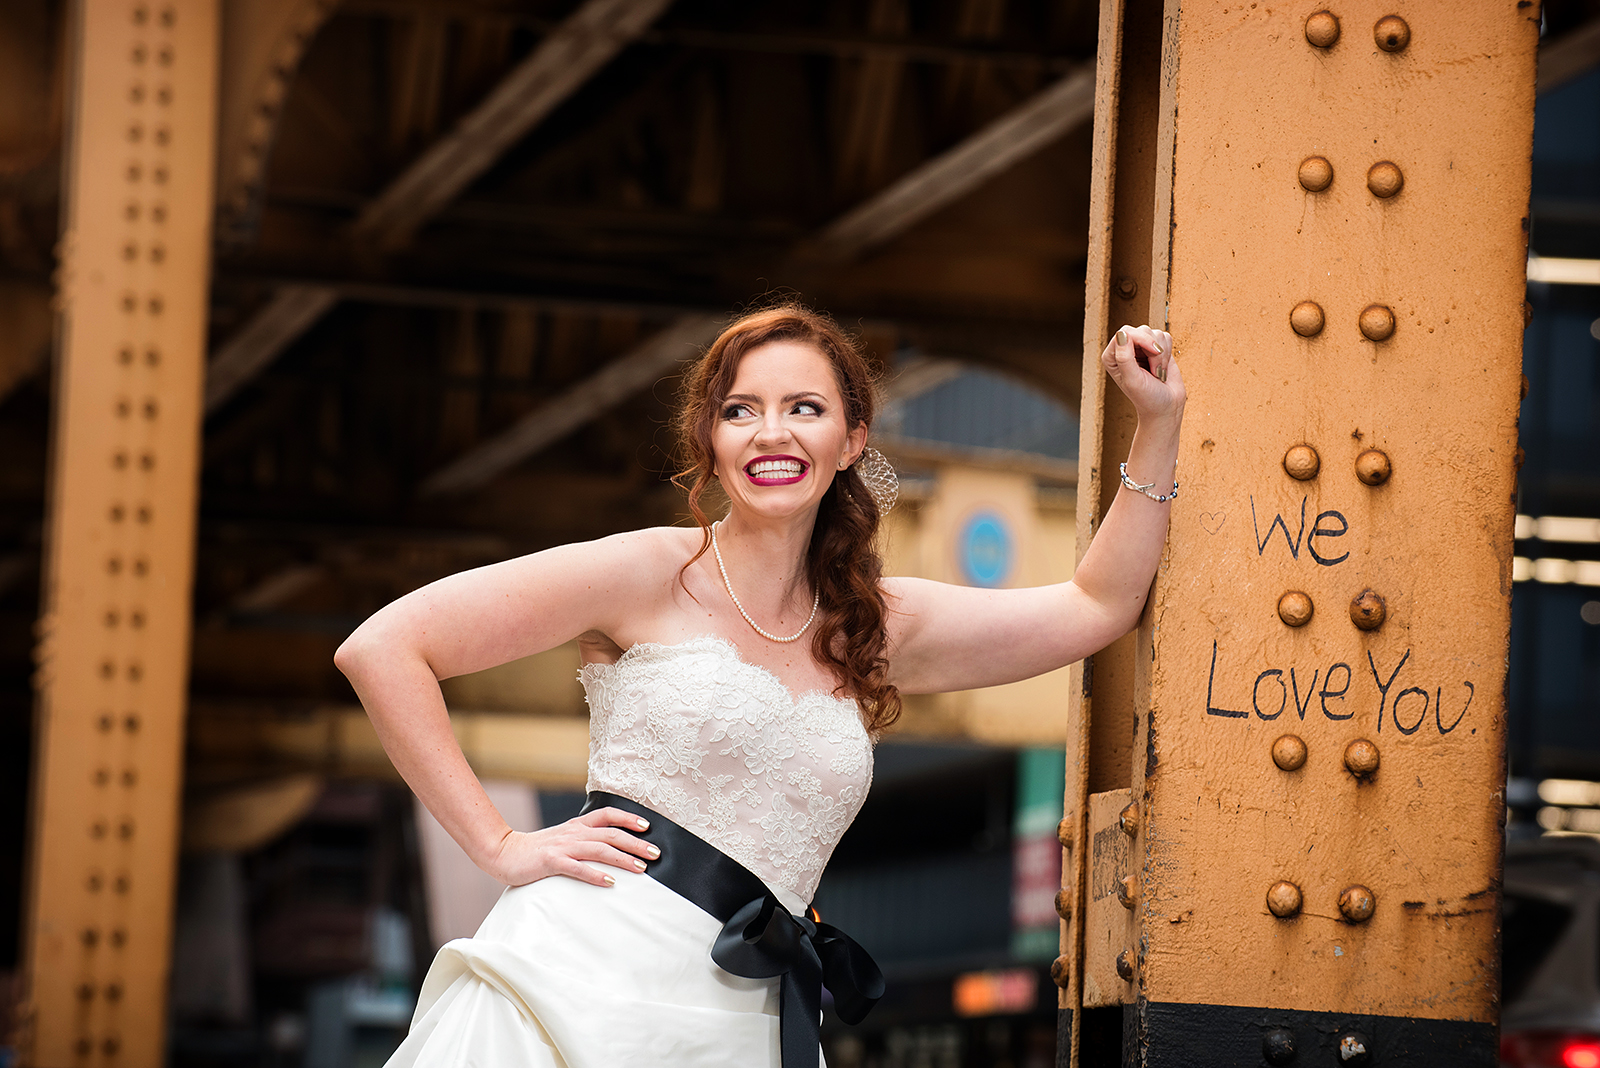 Bride at Wedding in downtown Chicago under EL train